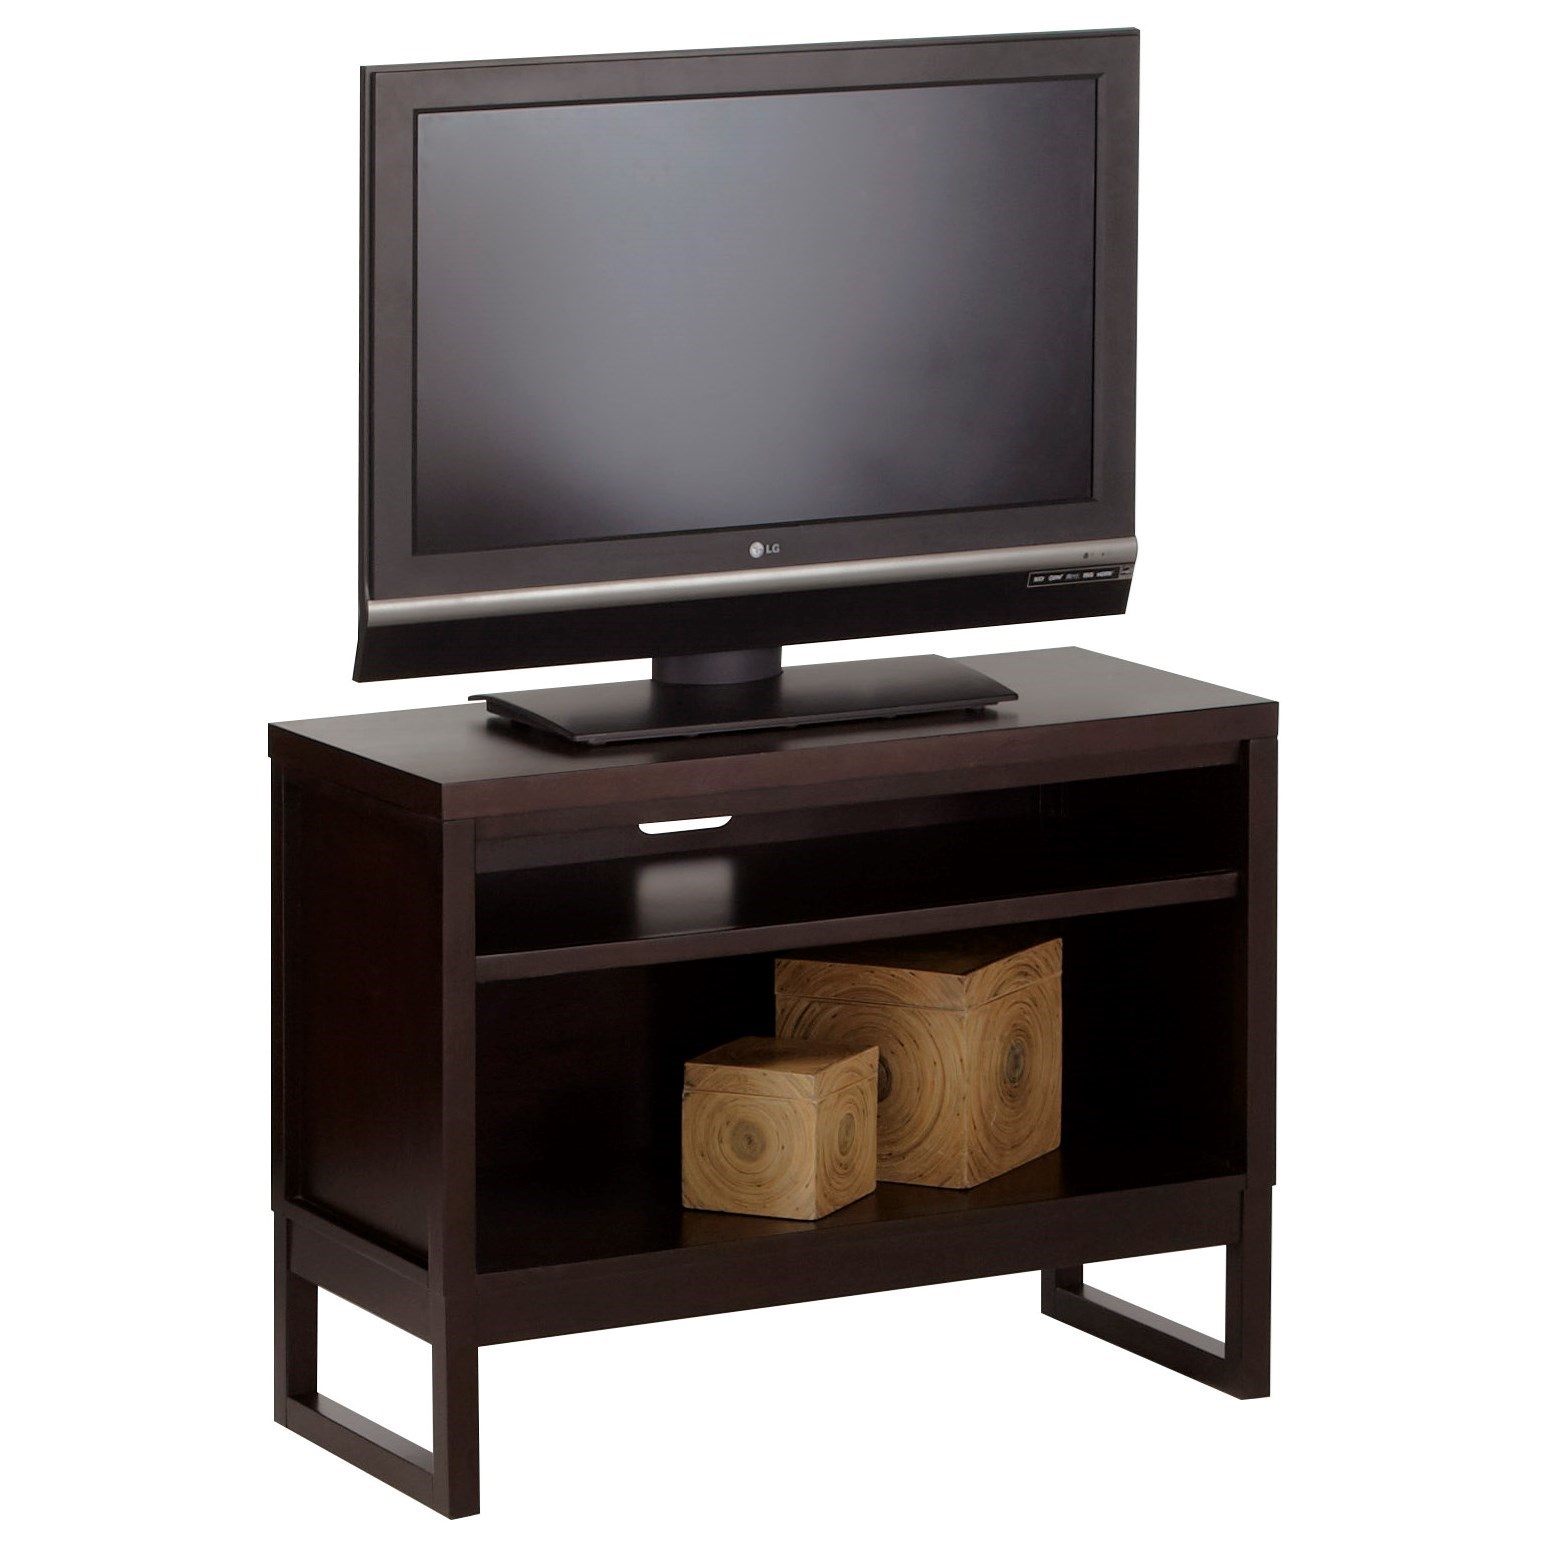 Progressive Furniture Athena Contemporary TV Stand With Sled Legs